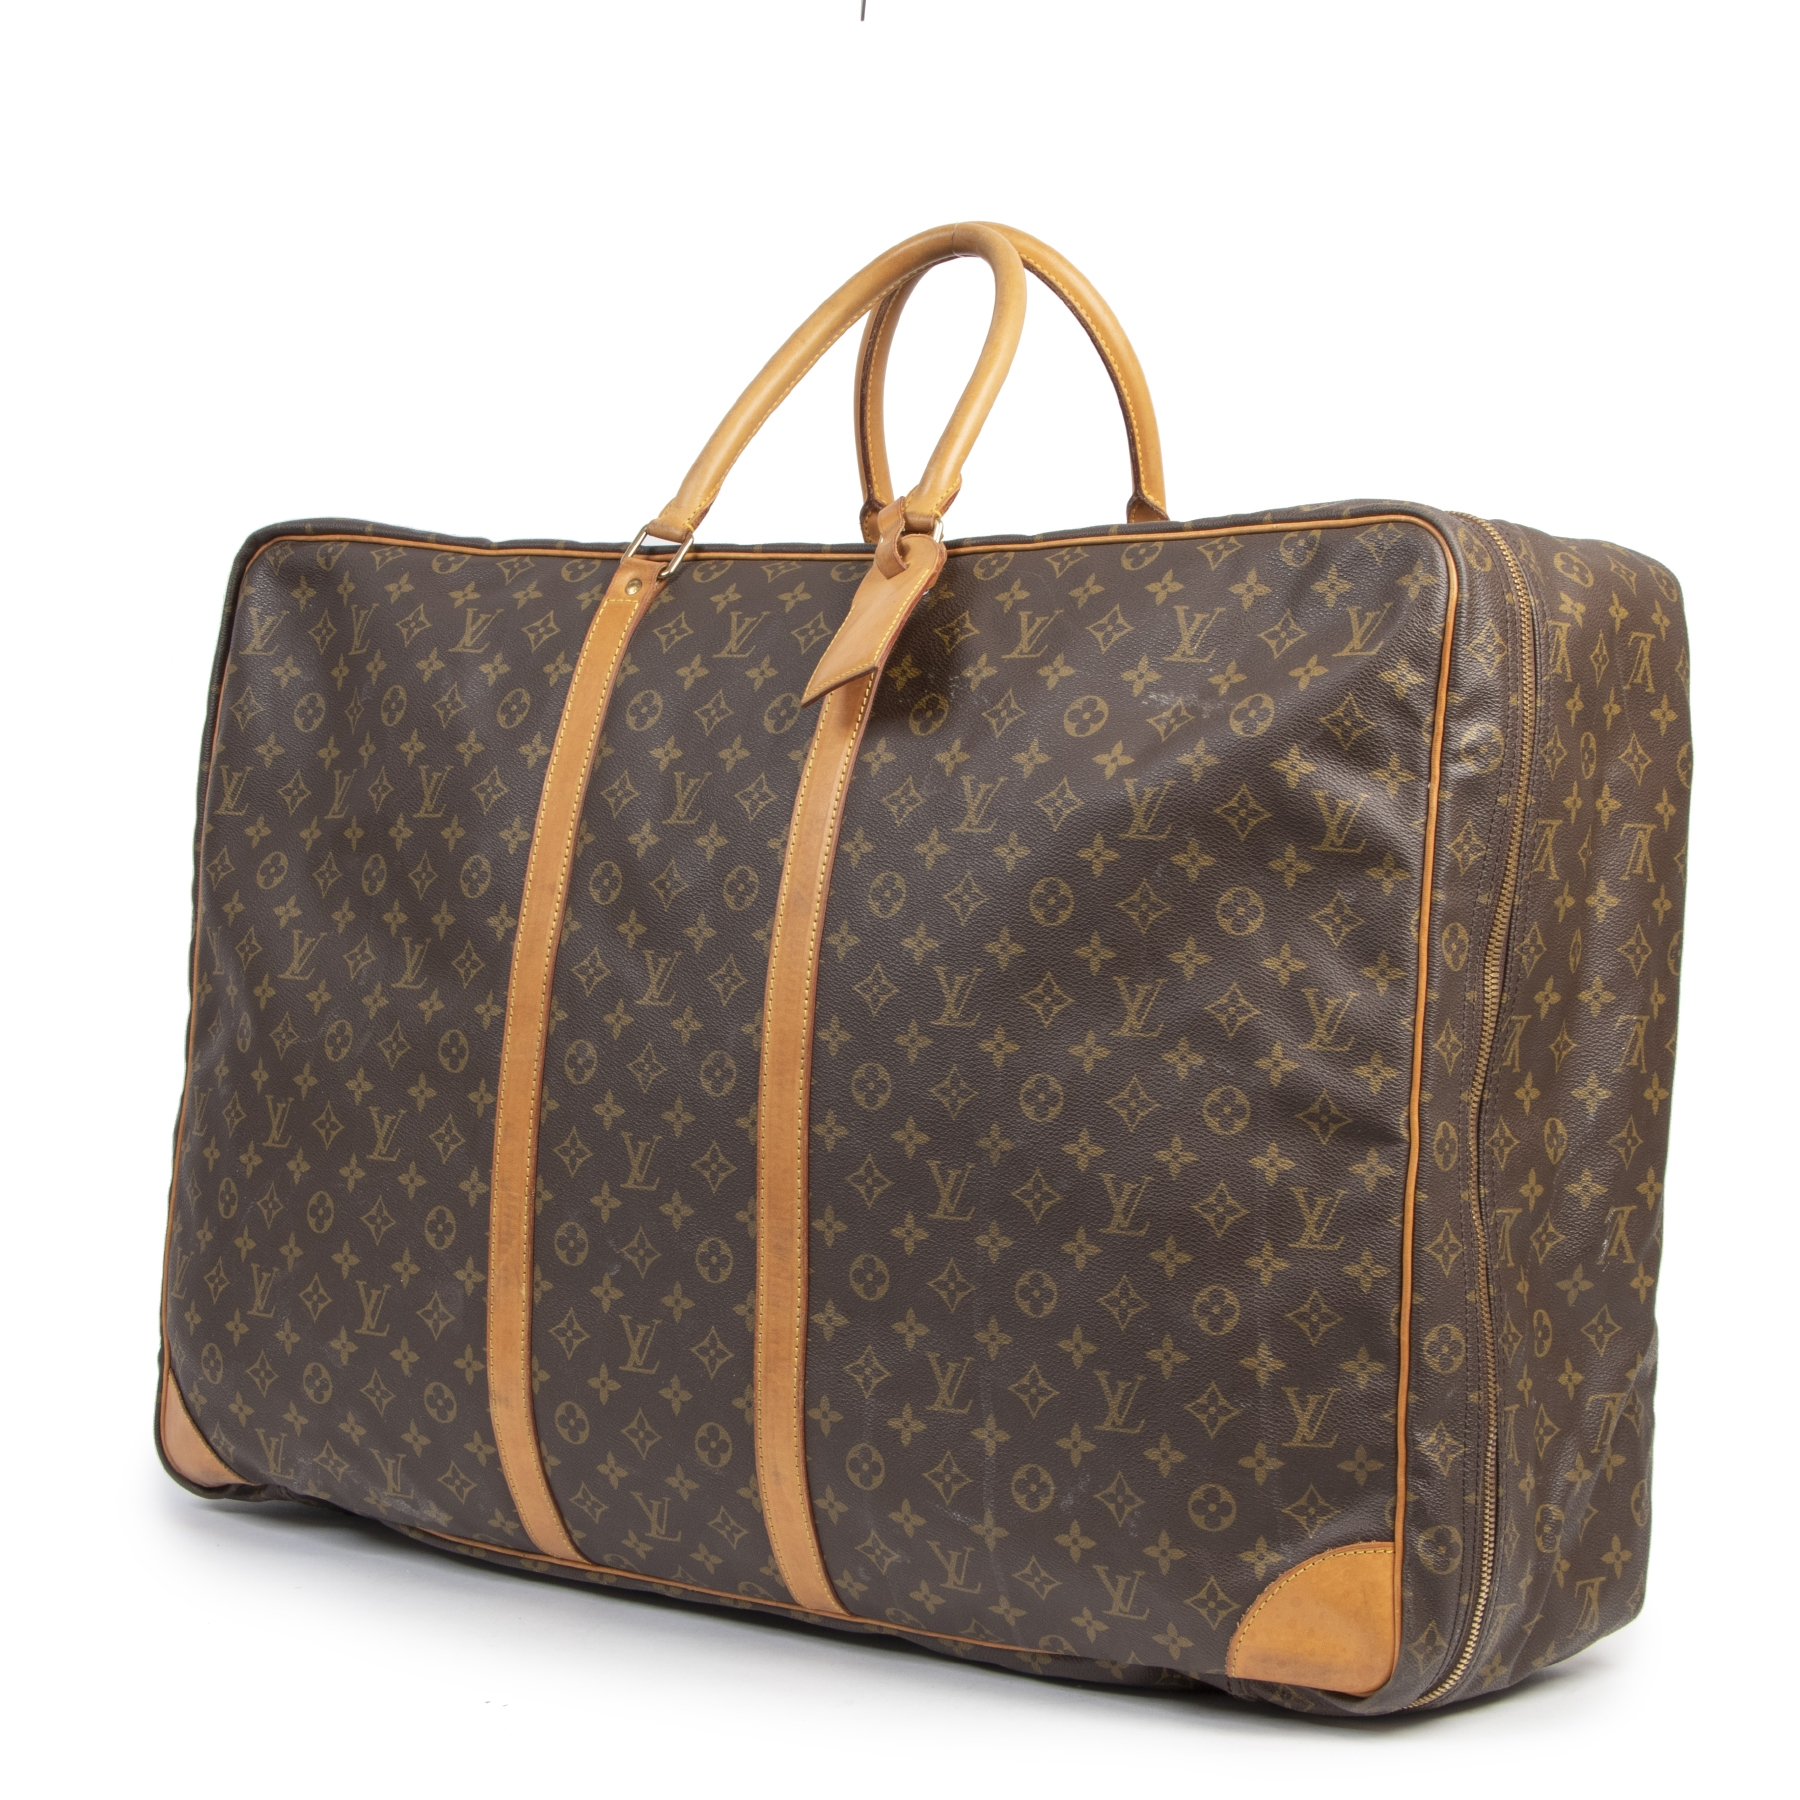 Authentieke tweedehands vintage Louis Vuitton Alize LV Monogram Travel Bag koop online webshop LabelLOV